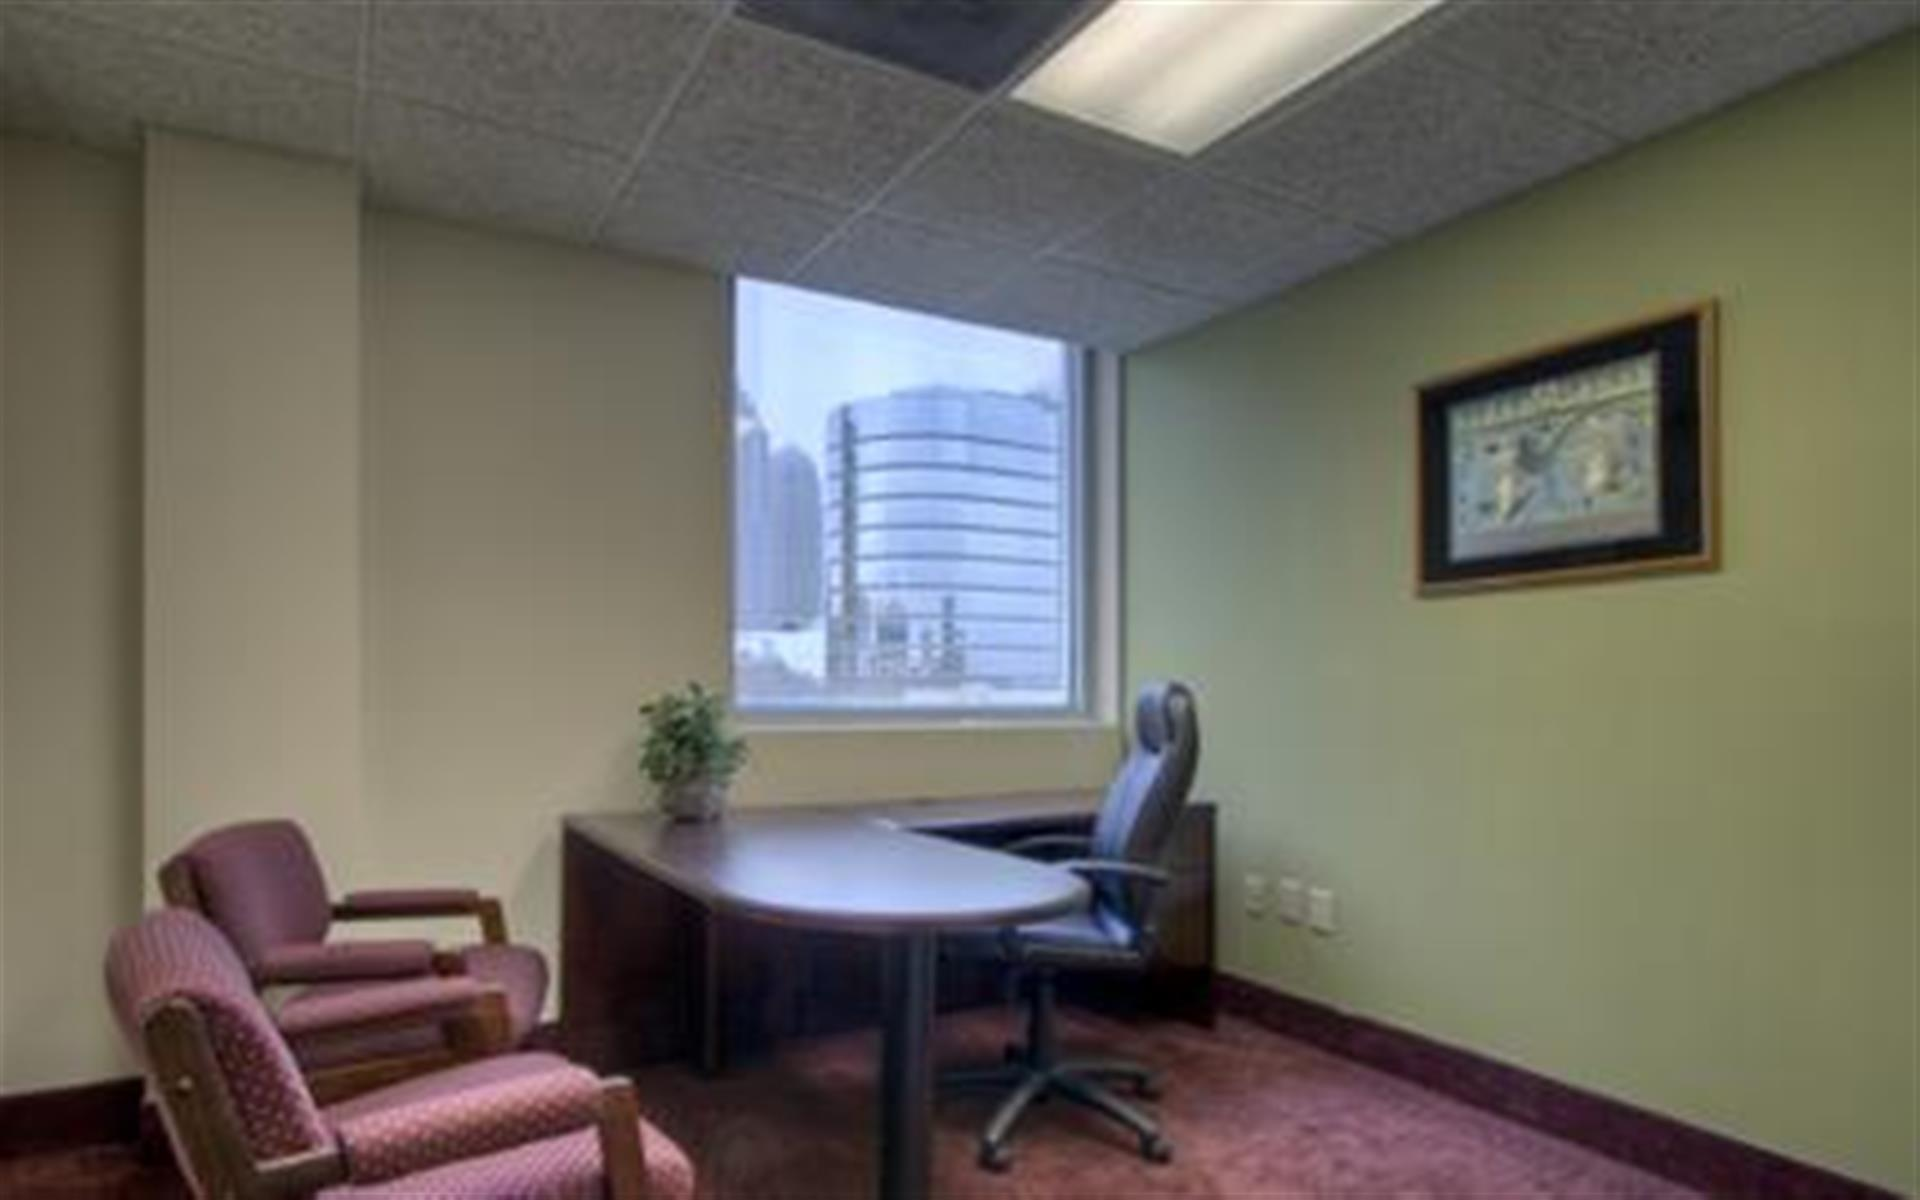 Peachtree Offices at Midtown, Inc. - Office (Up To 1500sq.ft. Available).